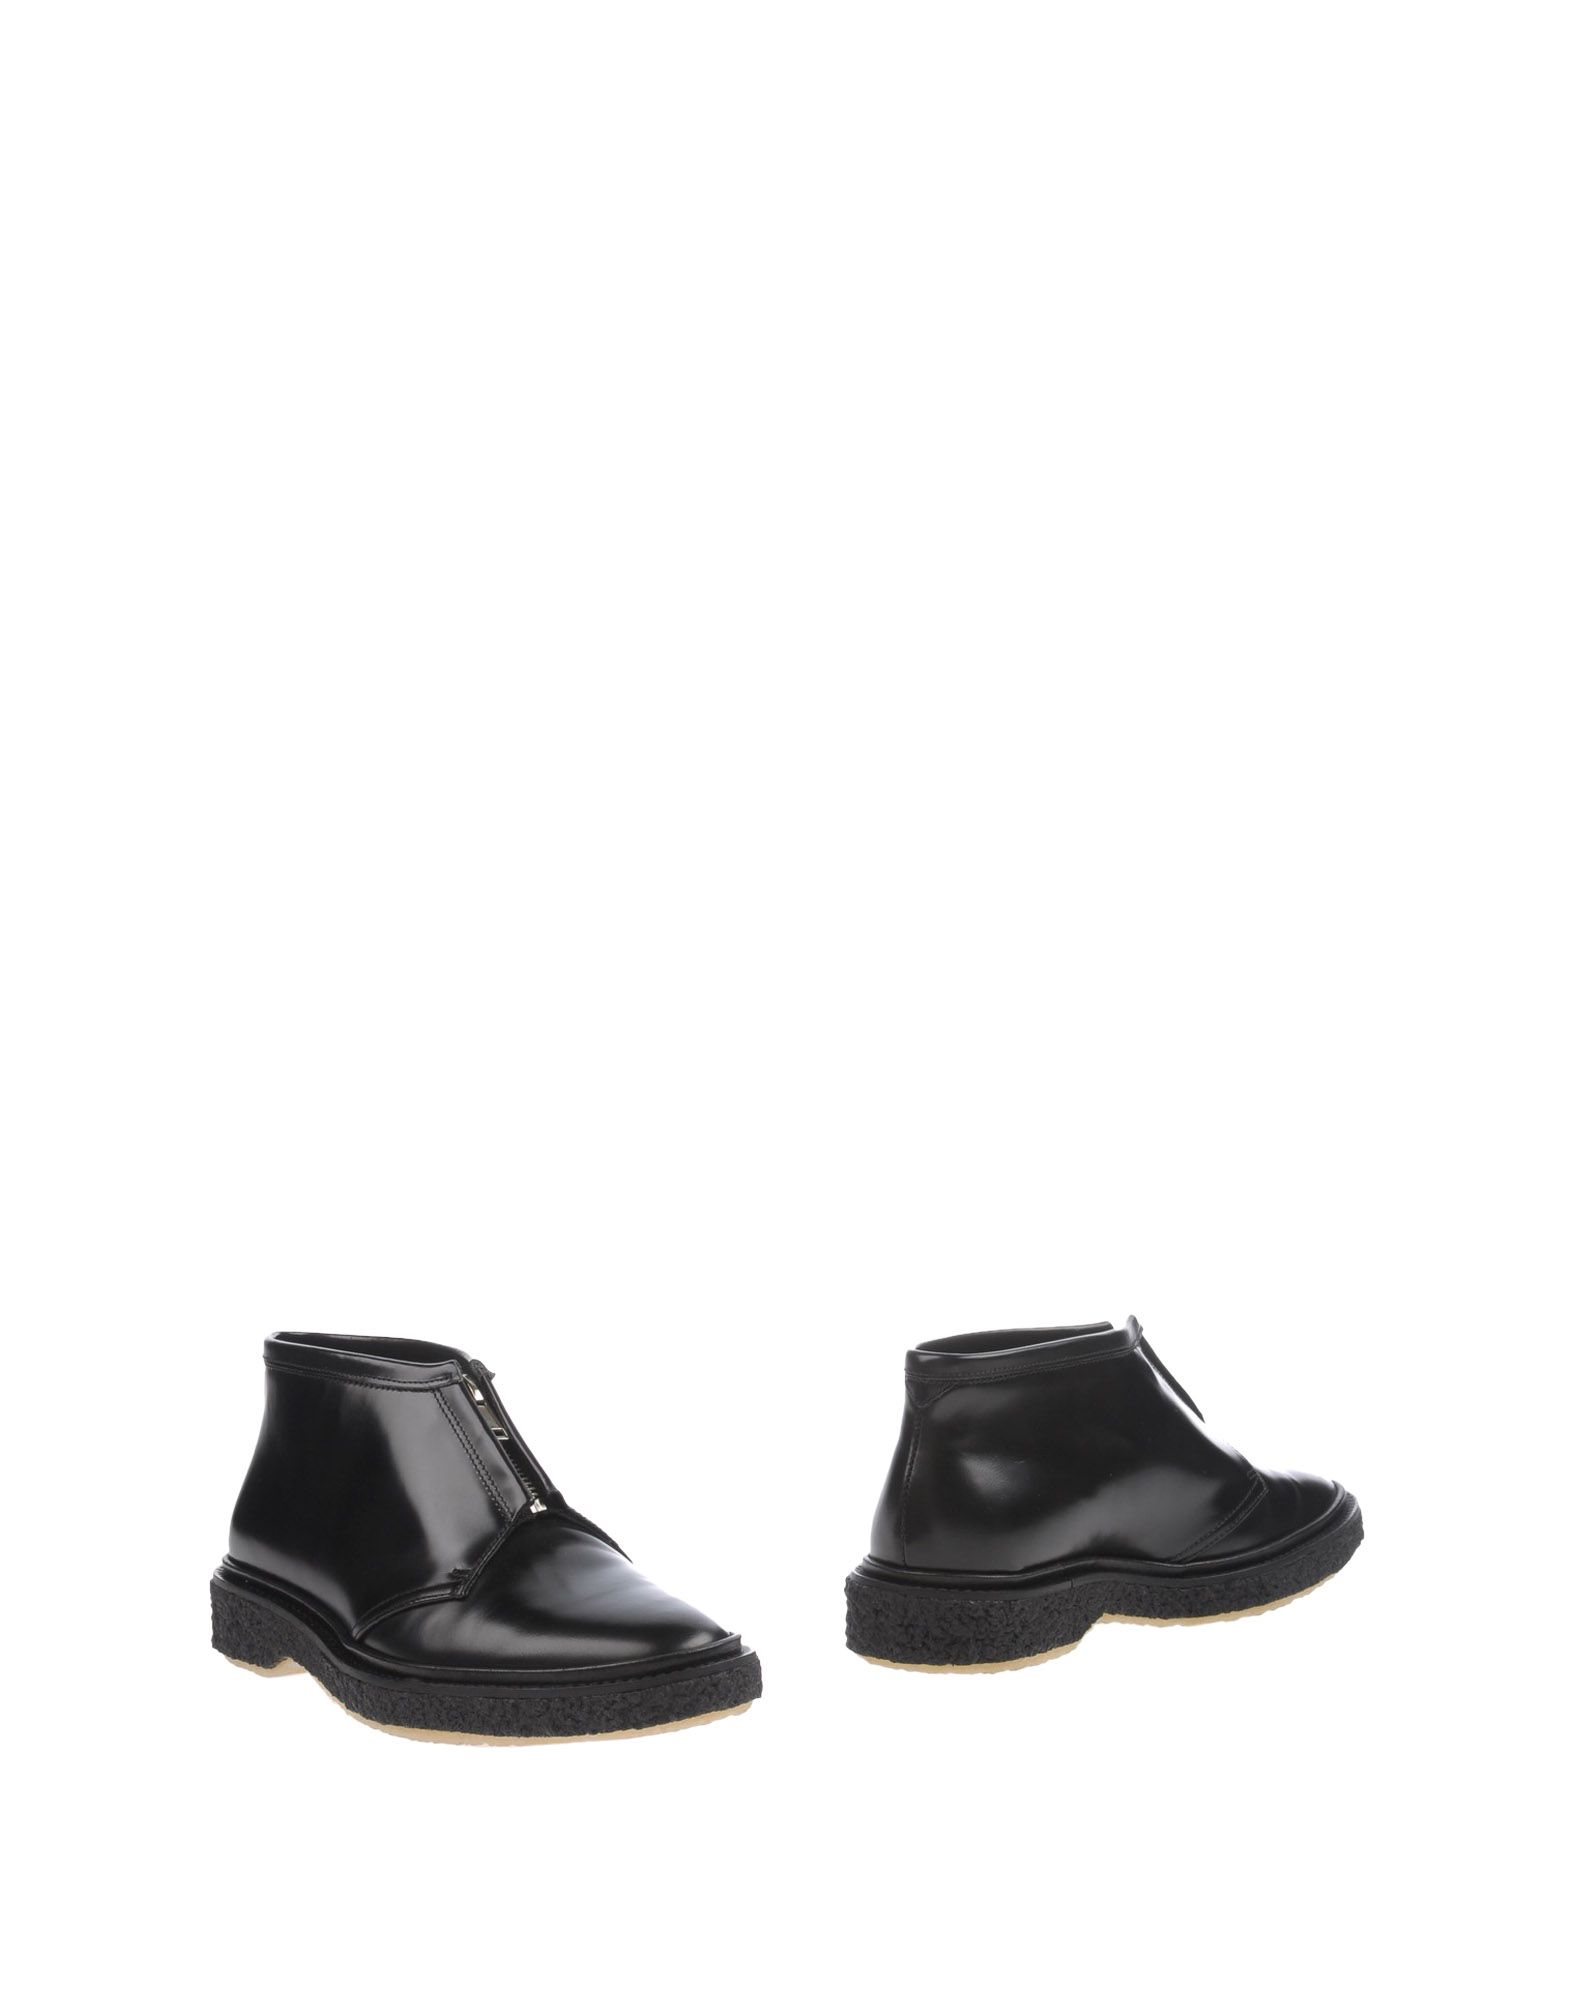 ADIEU Ankle Boot in Black